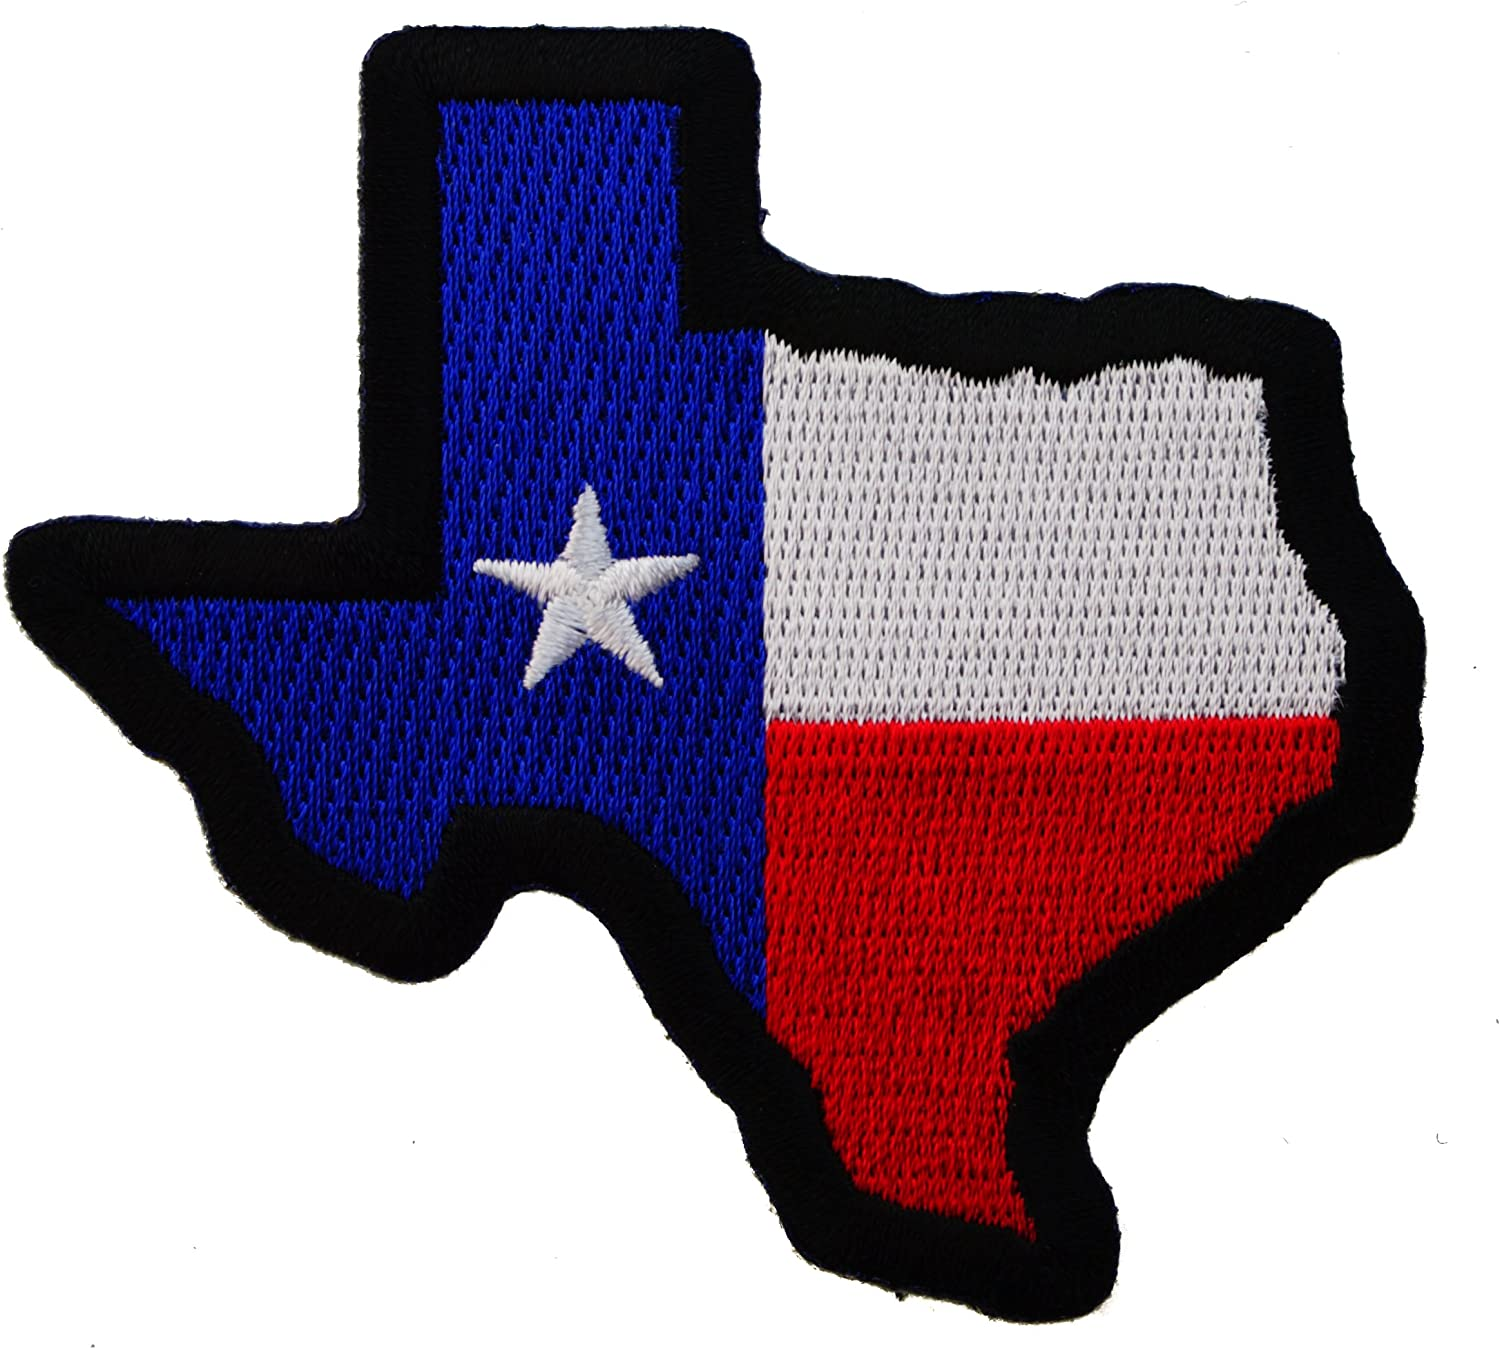 Amazon Com Map Texas State Flag Colors Iron On Embroidered Patch Ivan2084b Arts Crafts Sewing